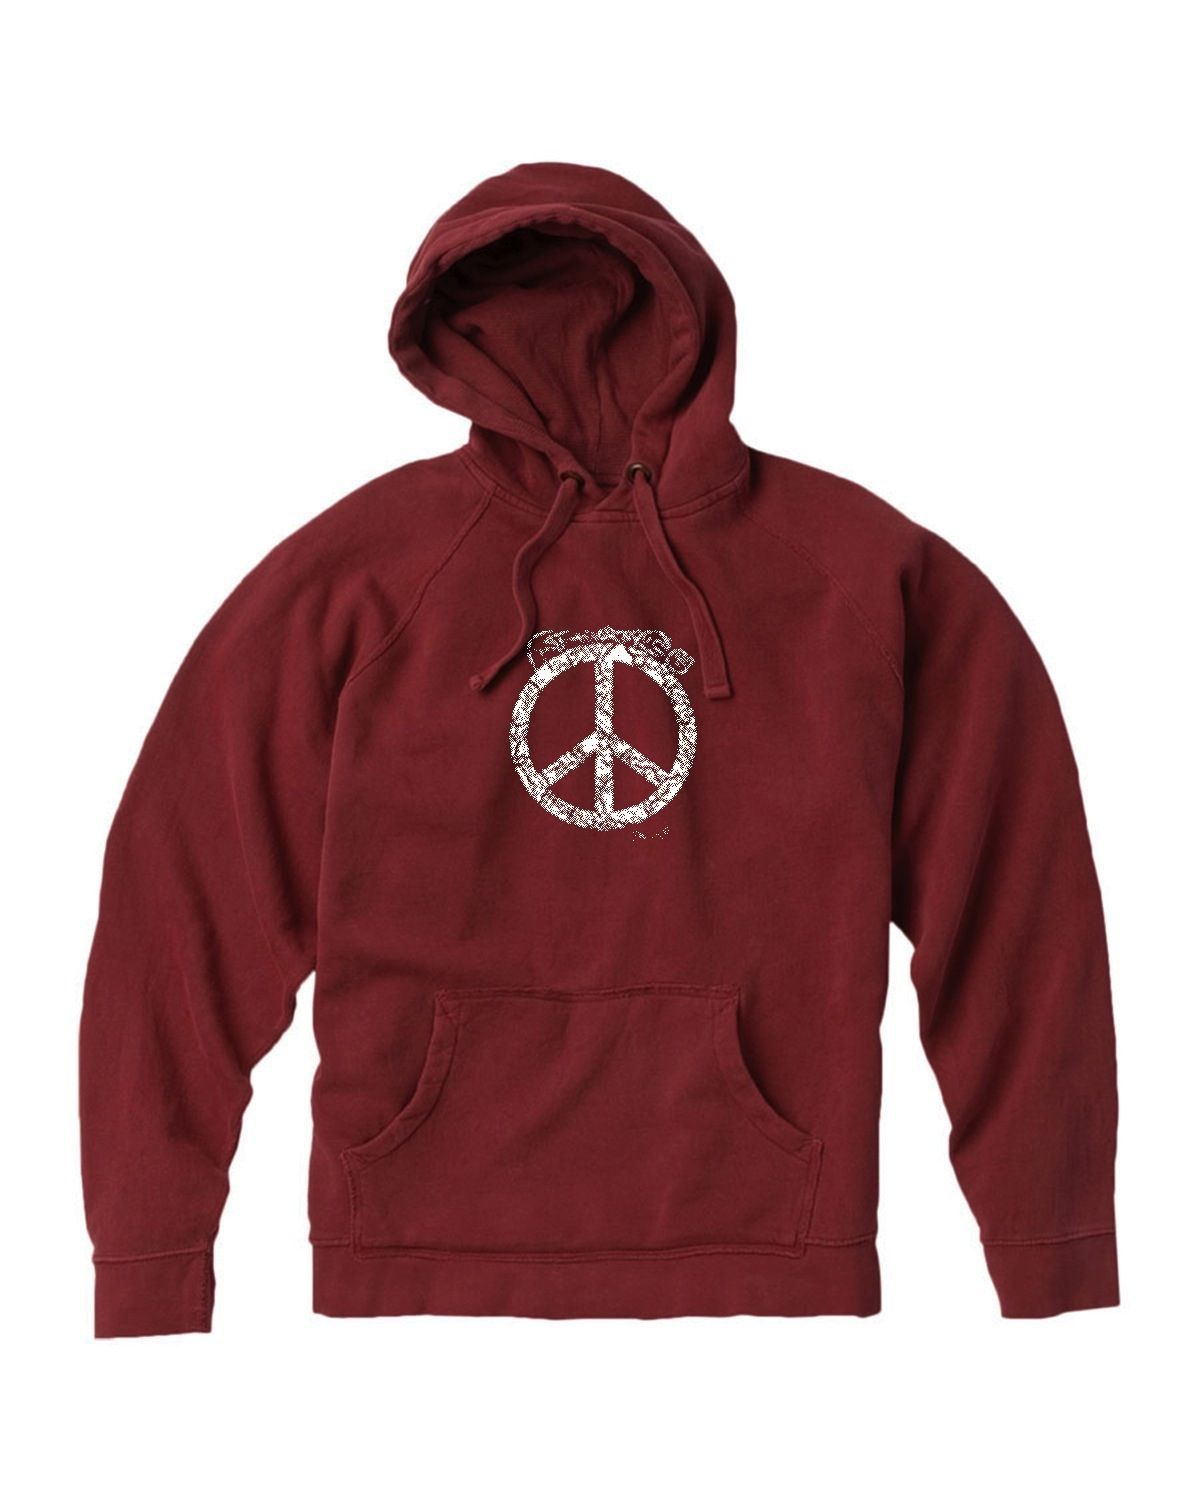 Peace hoodie fwd clothes pinterest greeting card companies beautifully crafted cards and clothes designed by deaf blind artist christian markovic we are a small clothing and greeting card company located in kristyandbryce Image collections